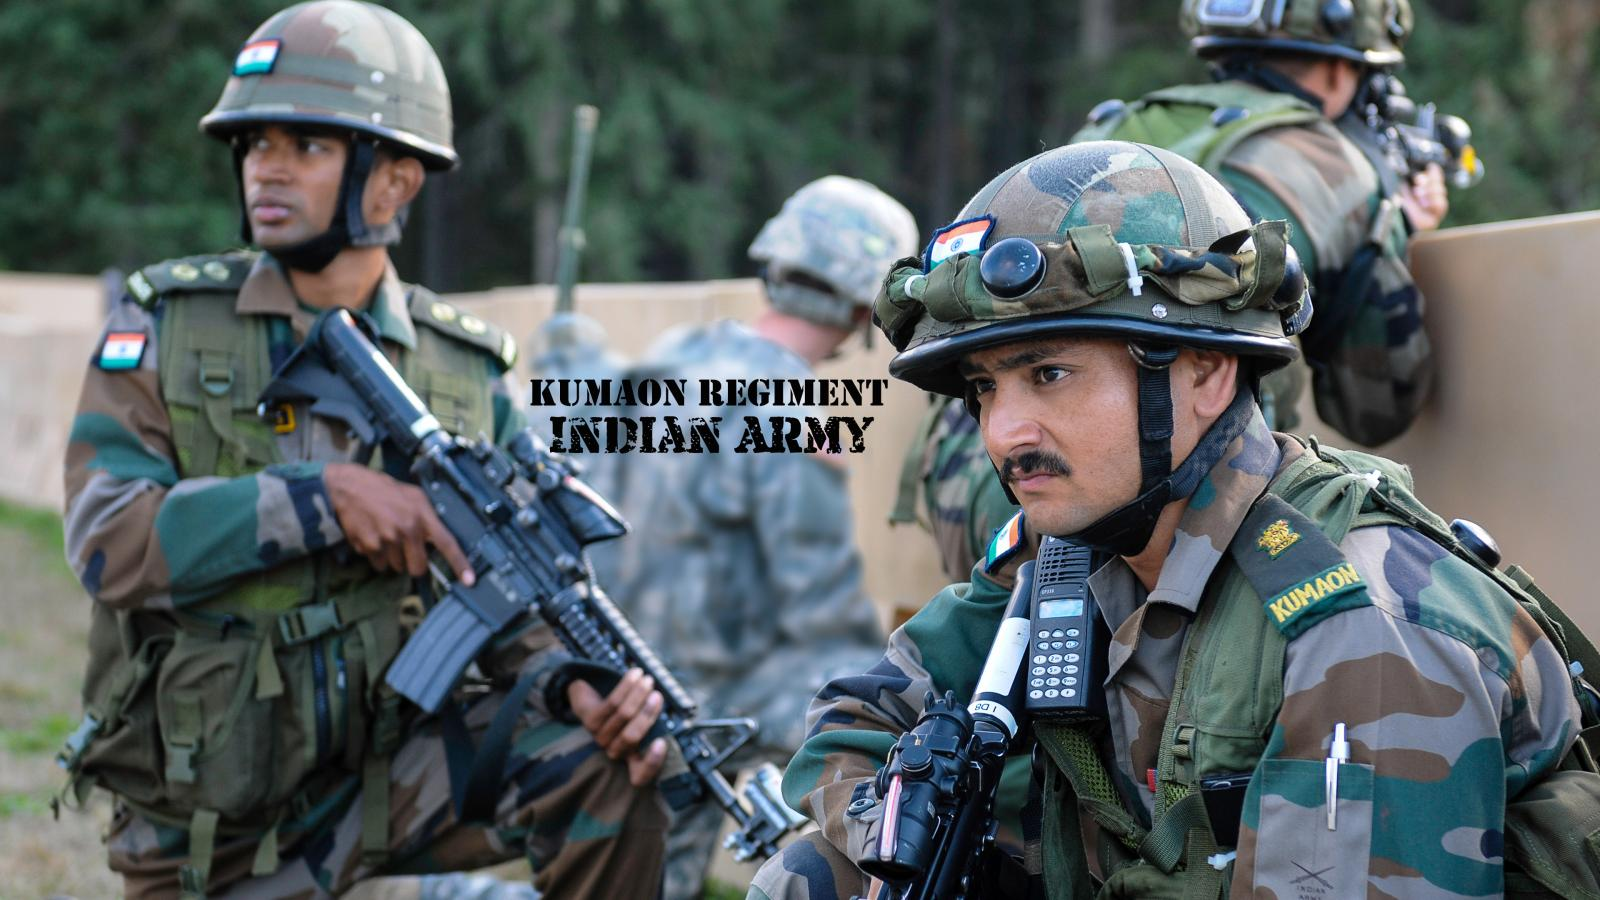 Wallpaper Of Kumaon Regiment Indian Army In Training